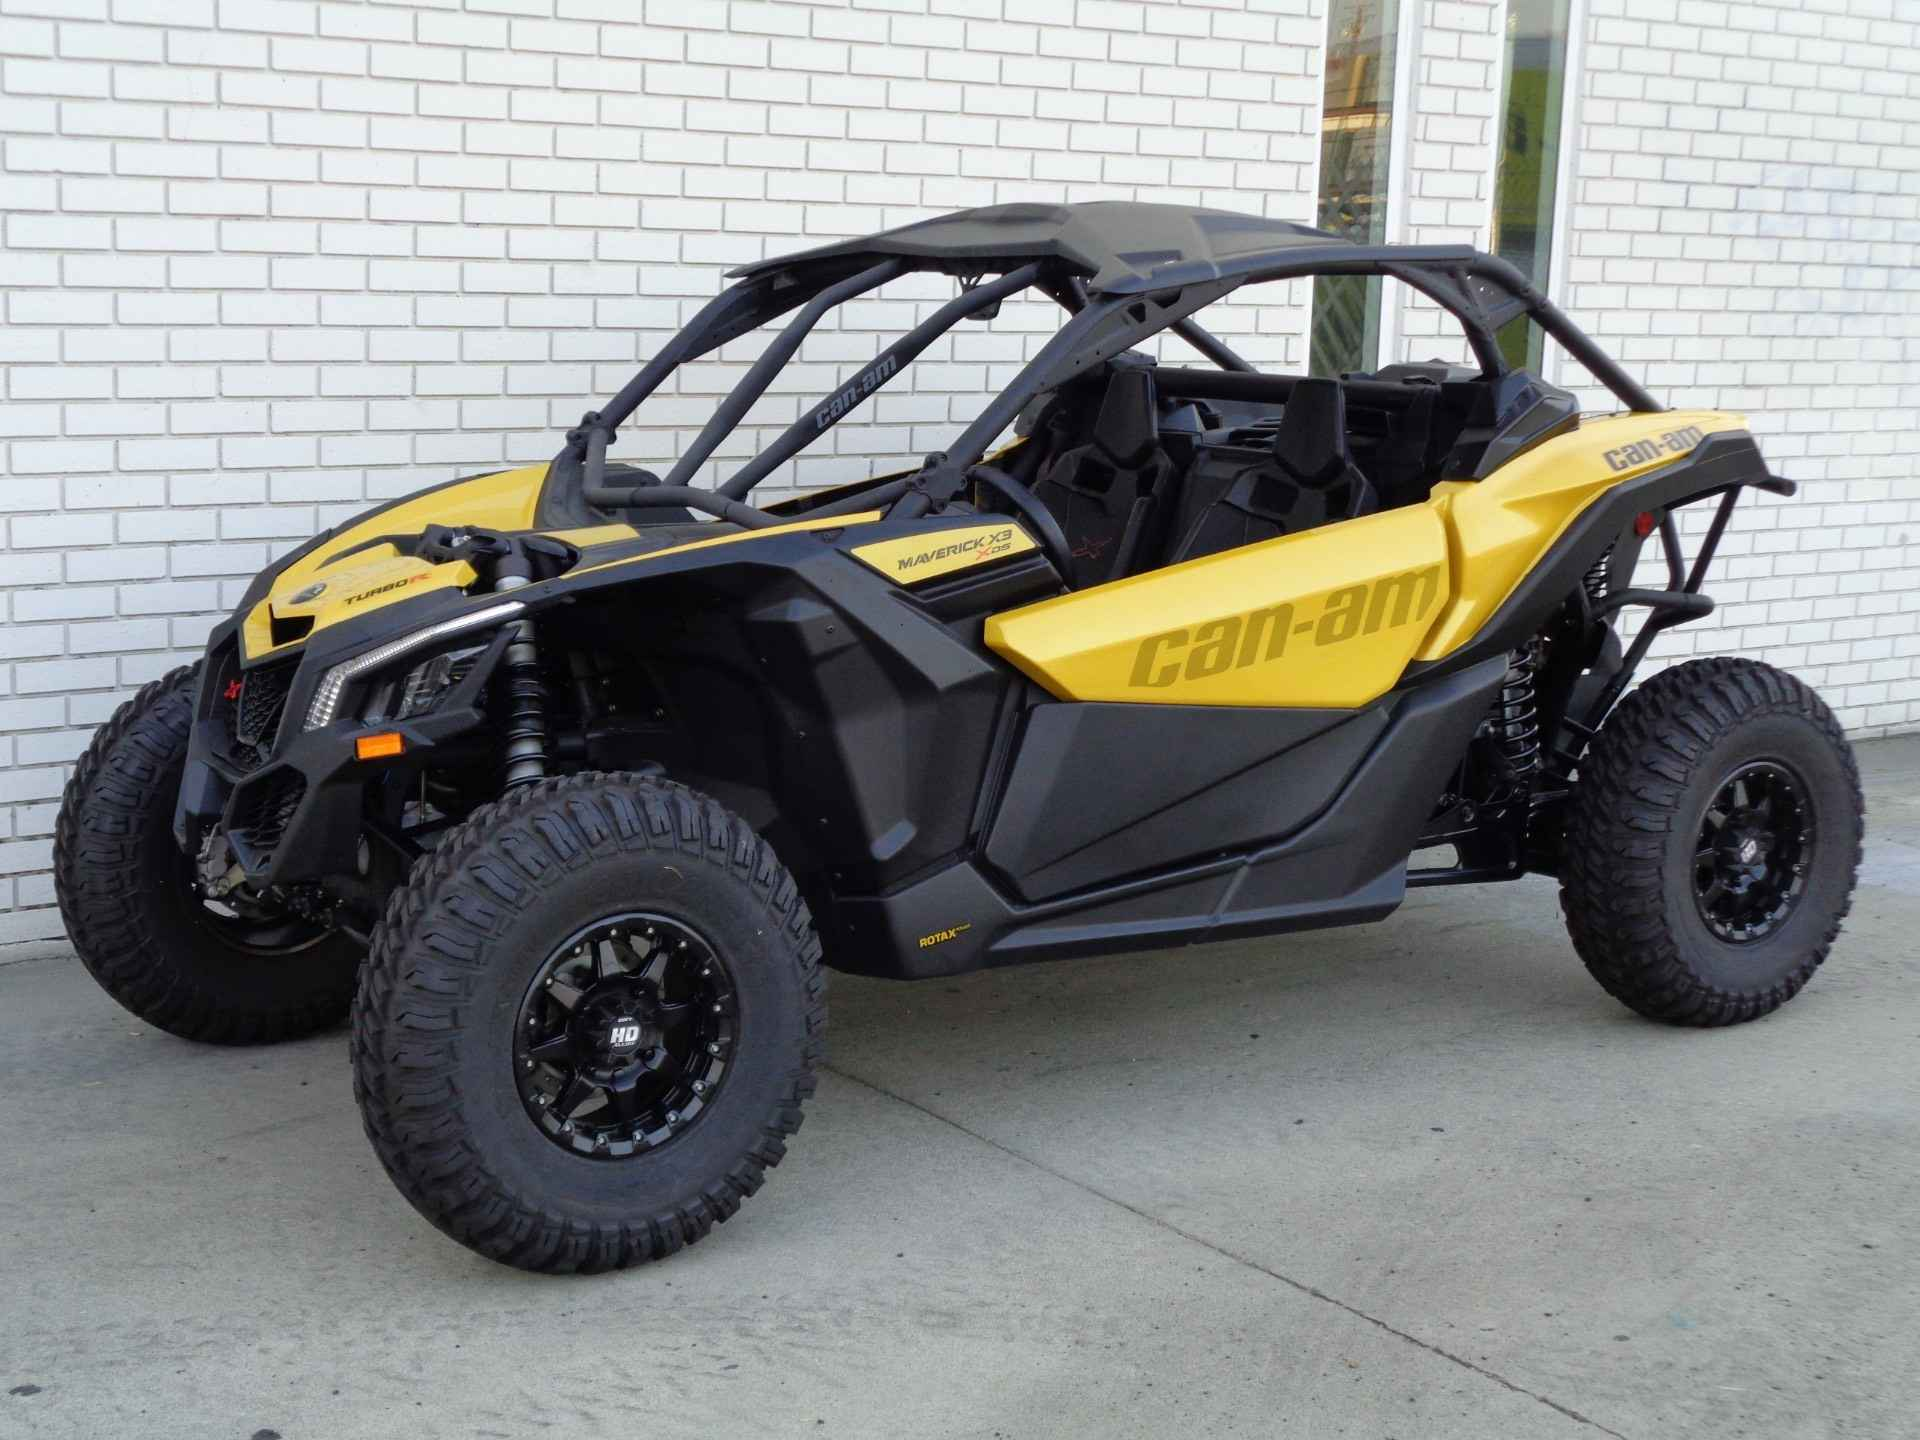 new 2017 can am maverick x3 x ds turbo r atvs for sale in california on atv trades. Black Bedroom Furniture Sets. Home Design Ideas